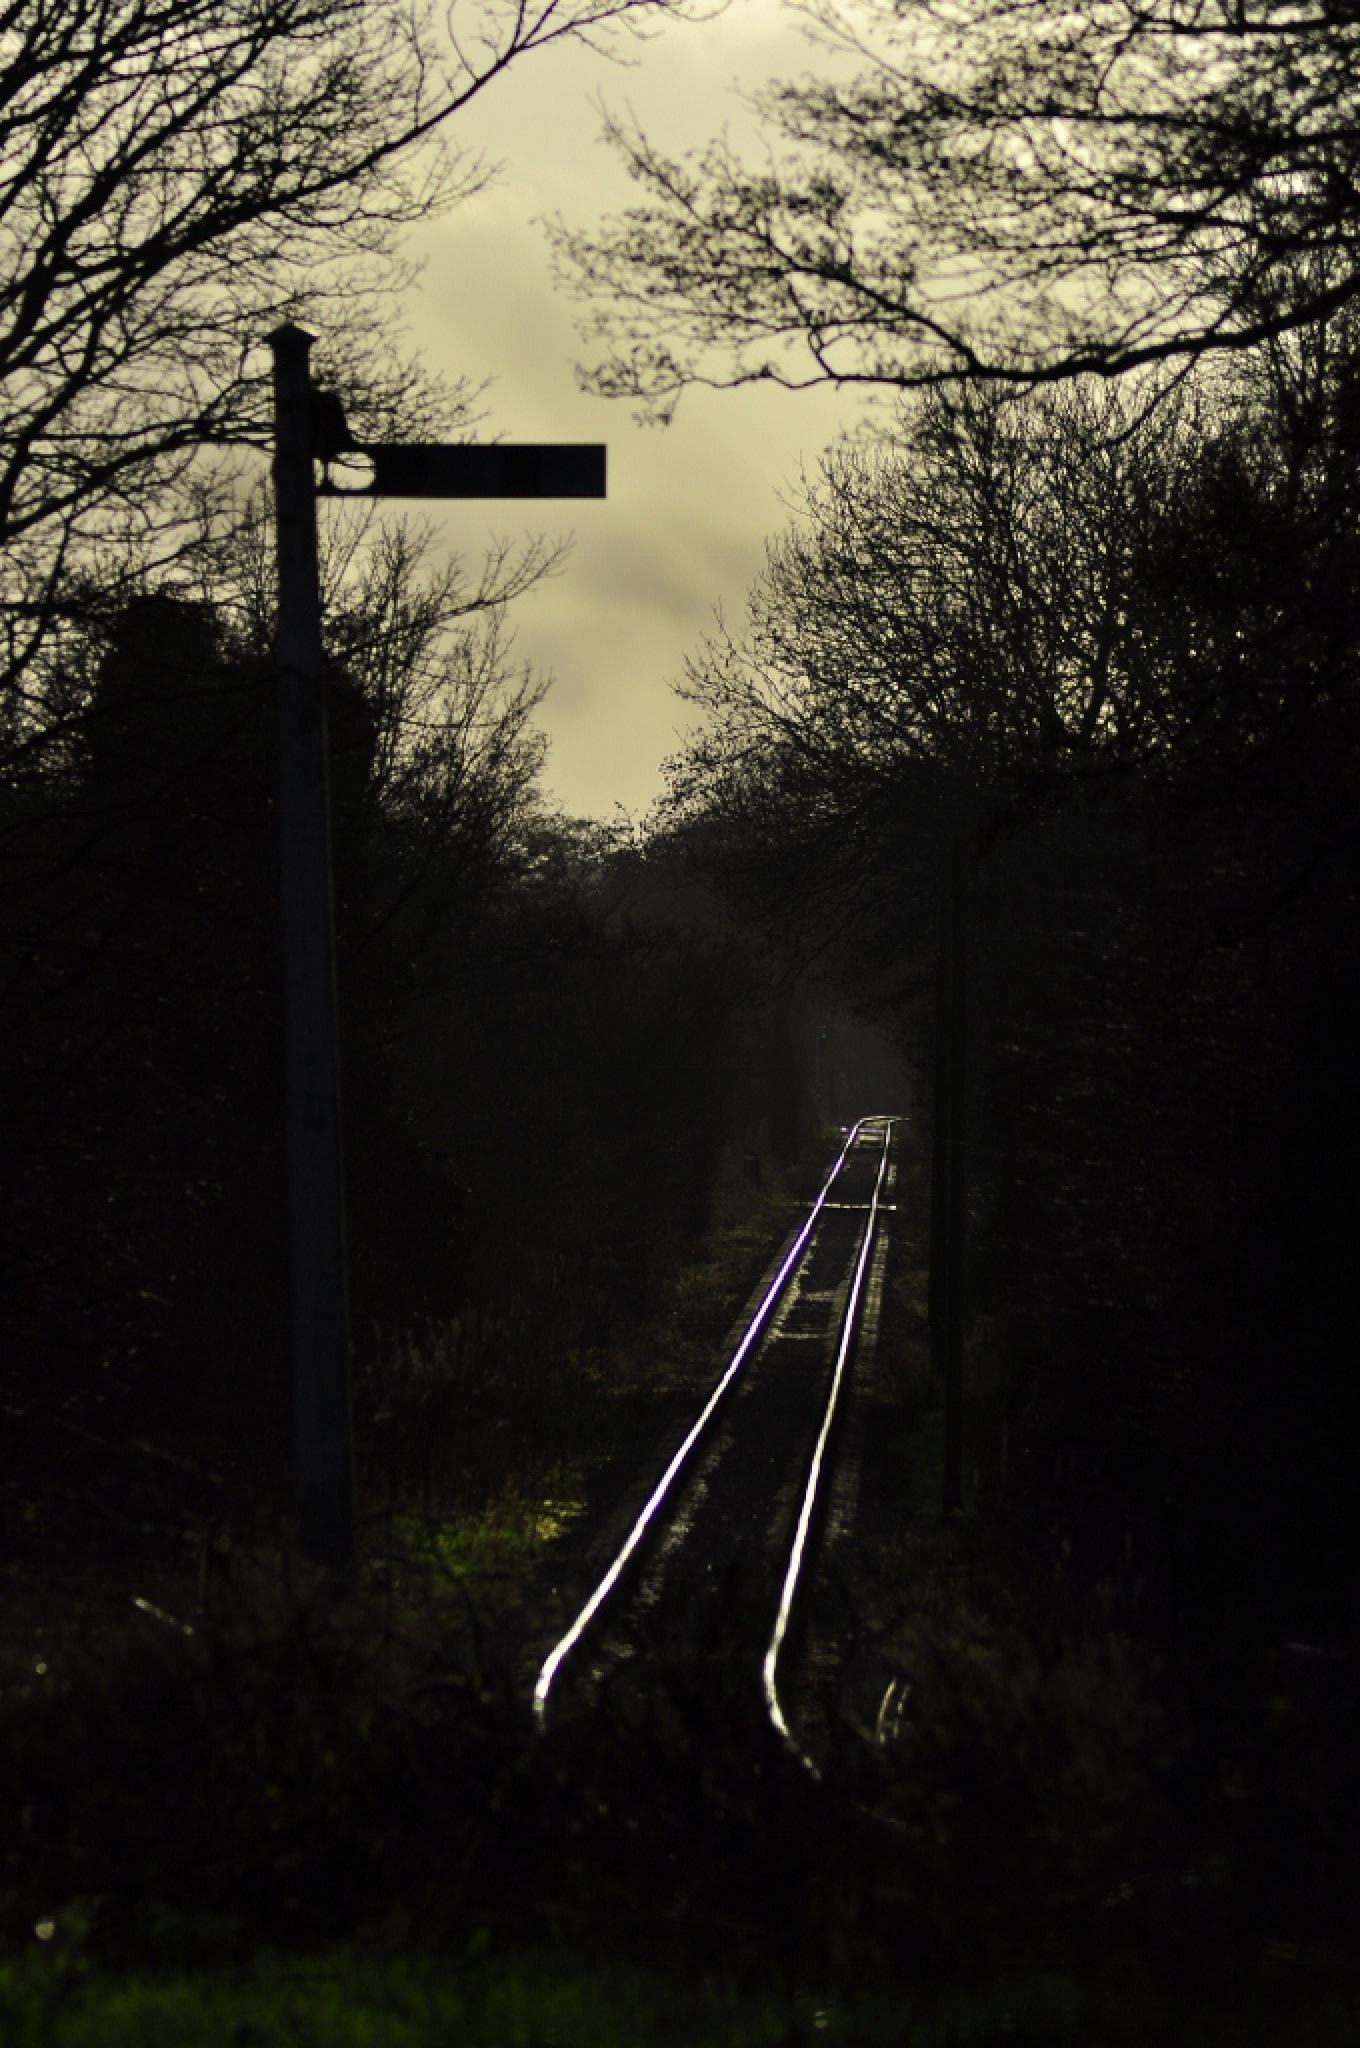 Down the line by Sidmouth